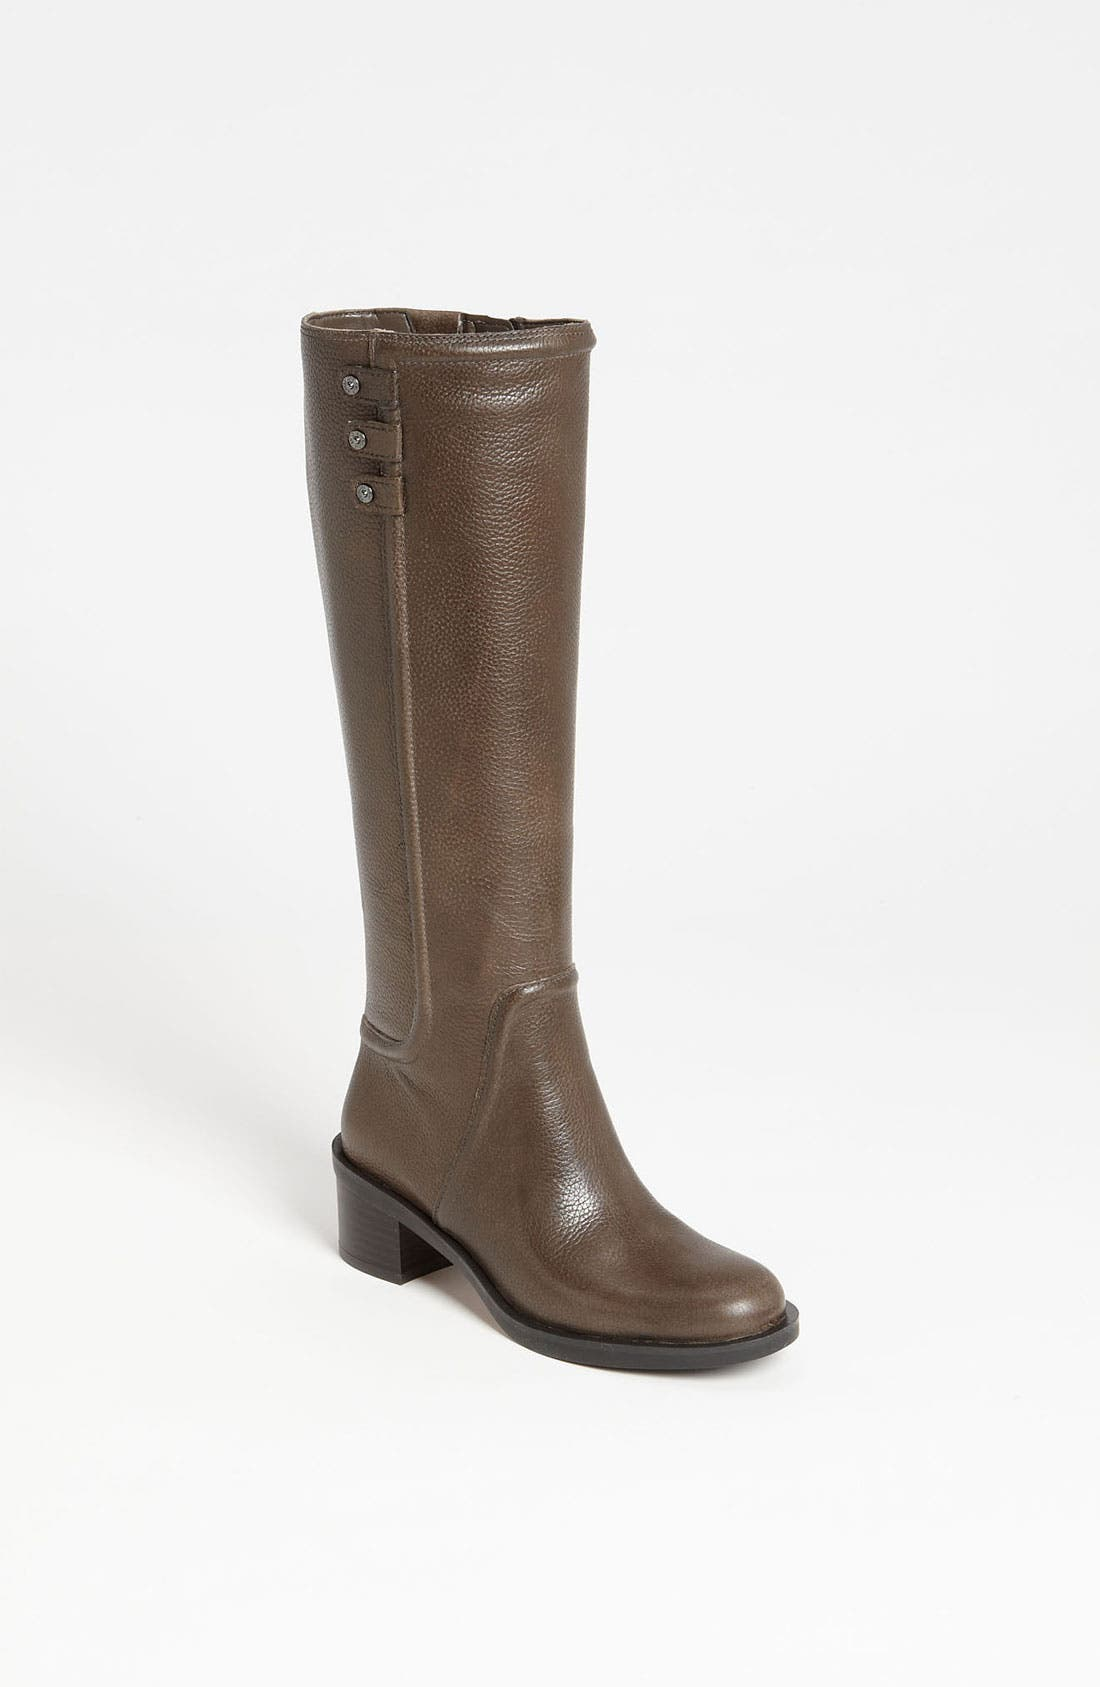 Alternate Image 1 Selected - Enzo Angiolini 'Gregie' Riding Boot